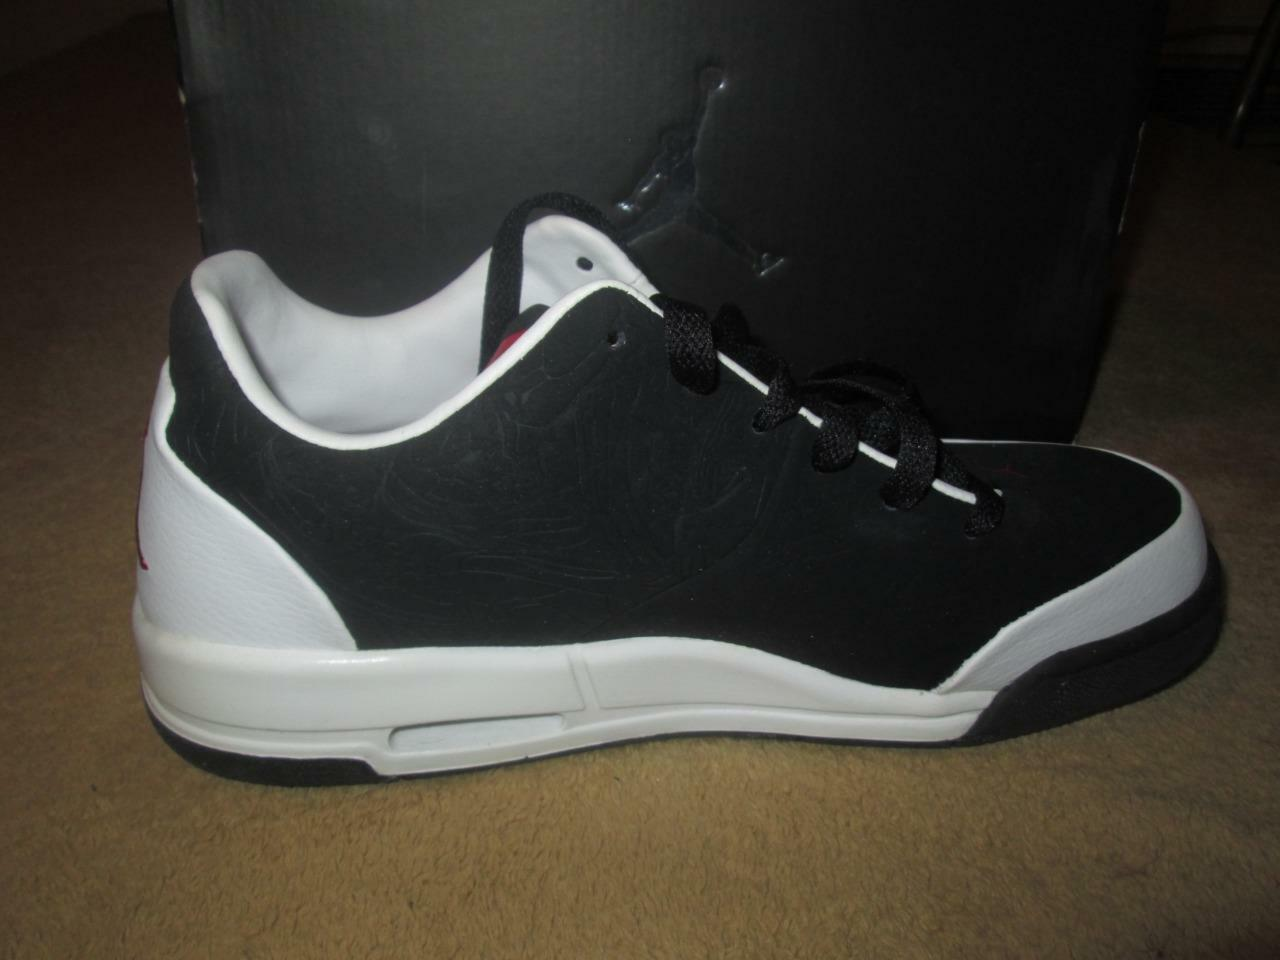 AUTHENTIC 2007 Jordan 23 Classic GS OG Color Size Size Size 7Y 313615 002 DEADSTOCK IN BOX db2951